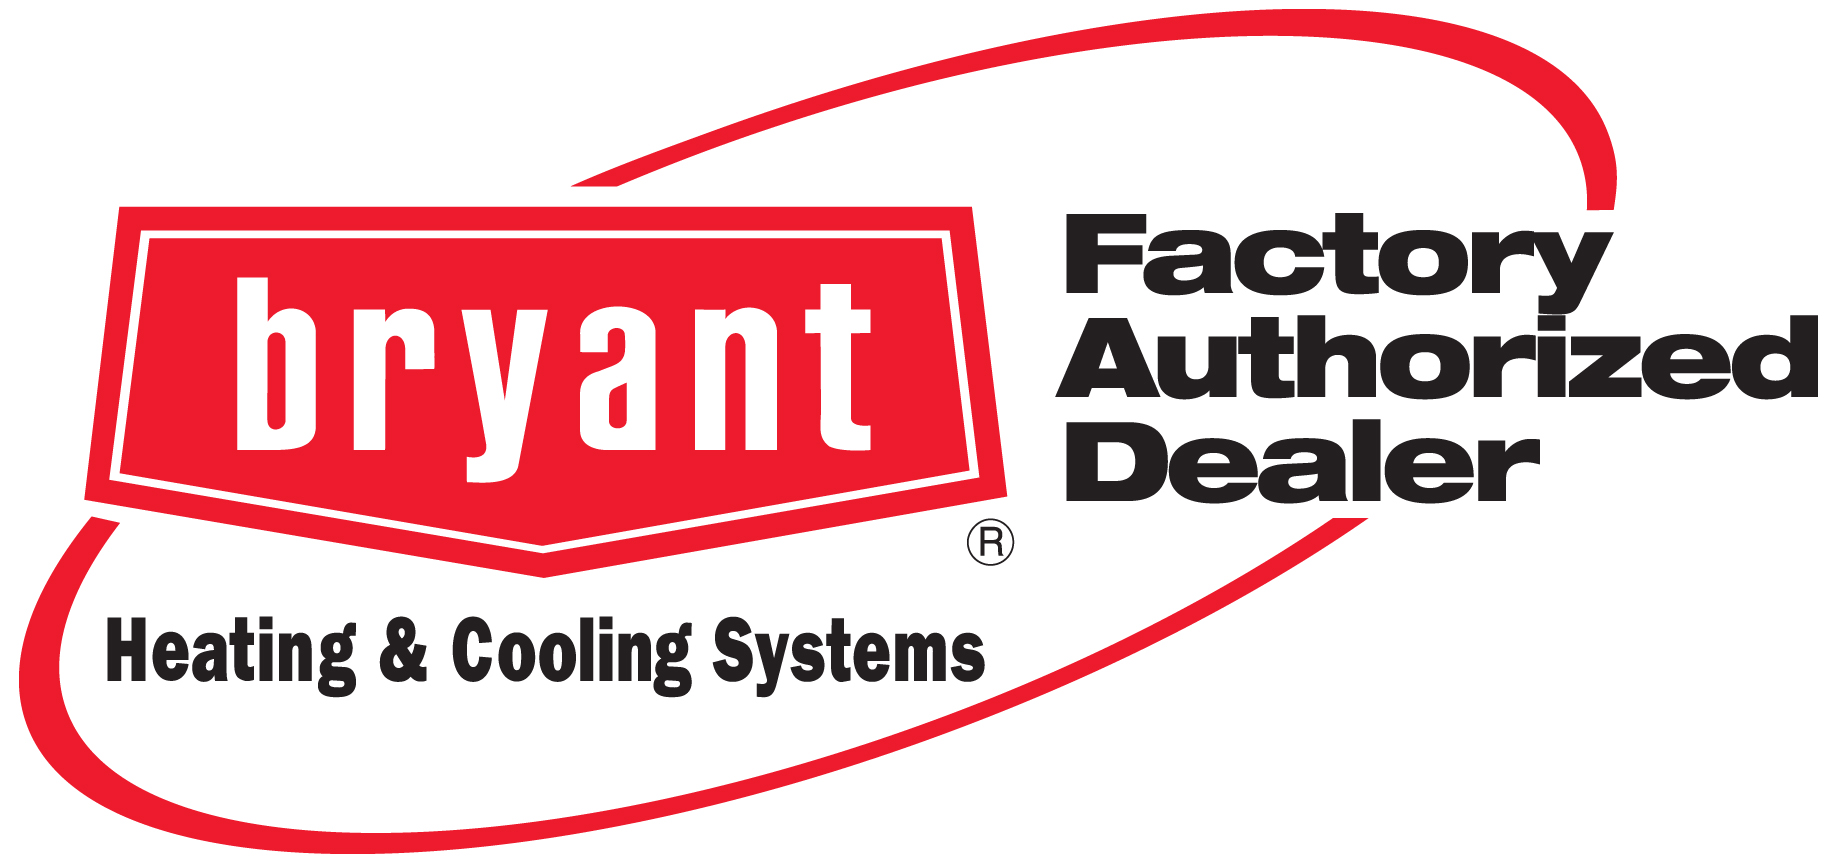 Standard Heating & Air Conditioning Company is a Bryant Factory Authorized Dealer